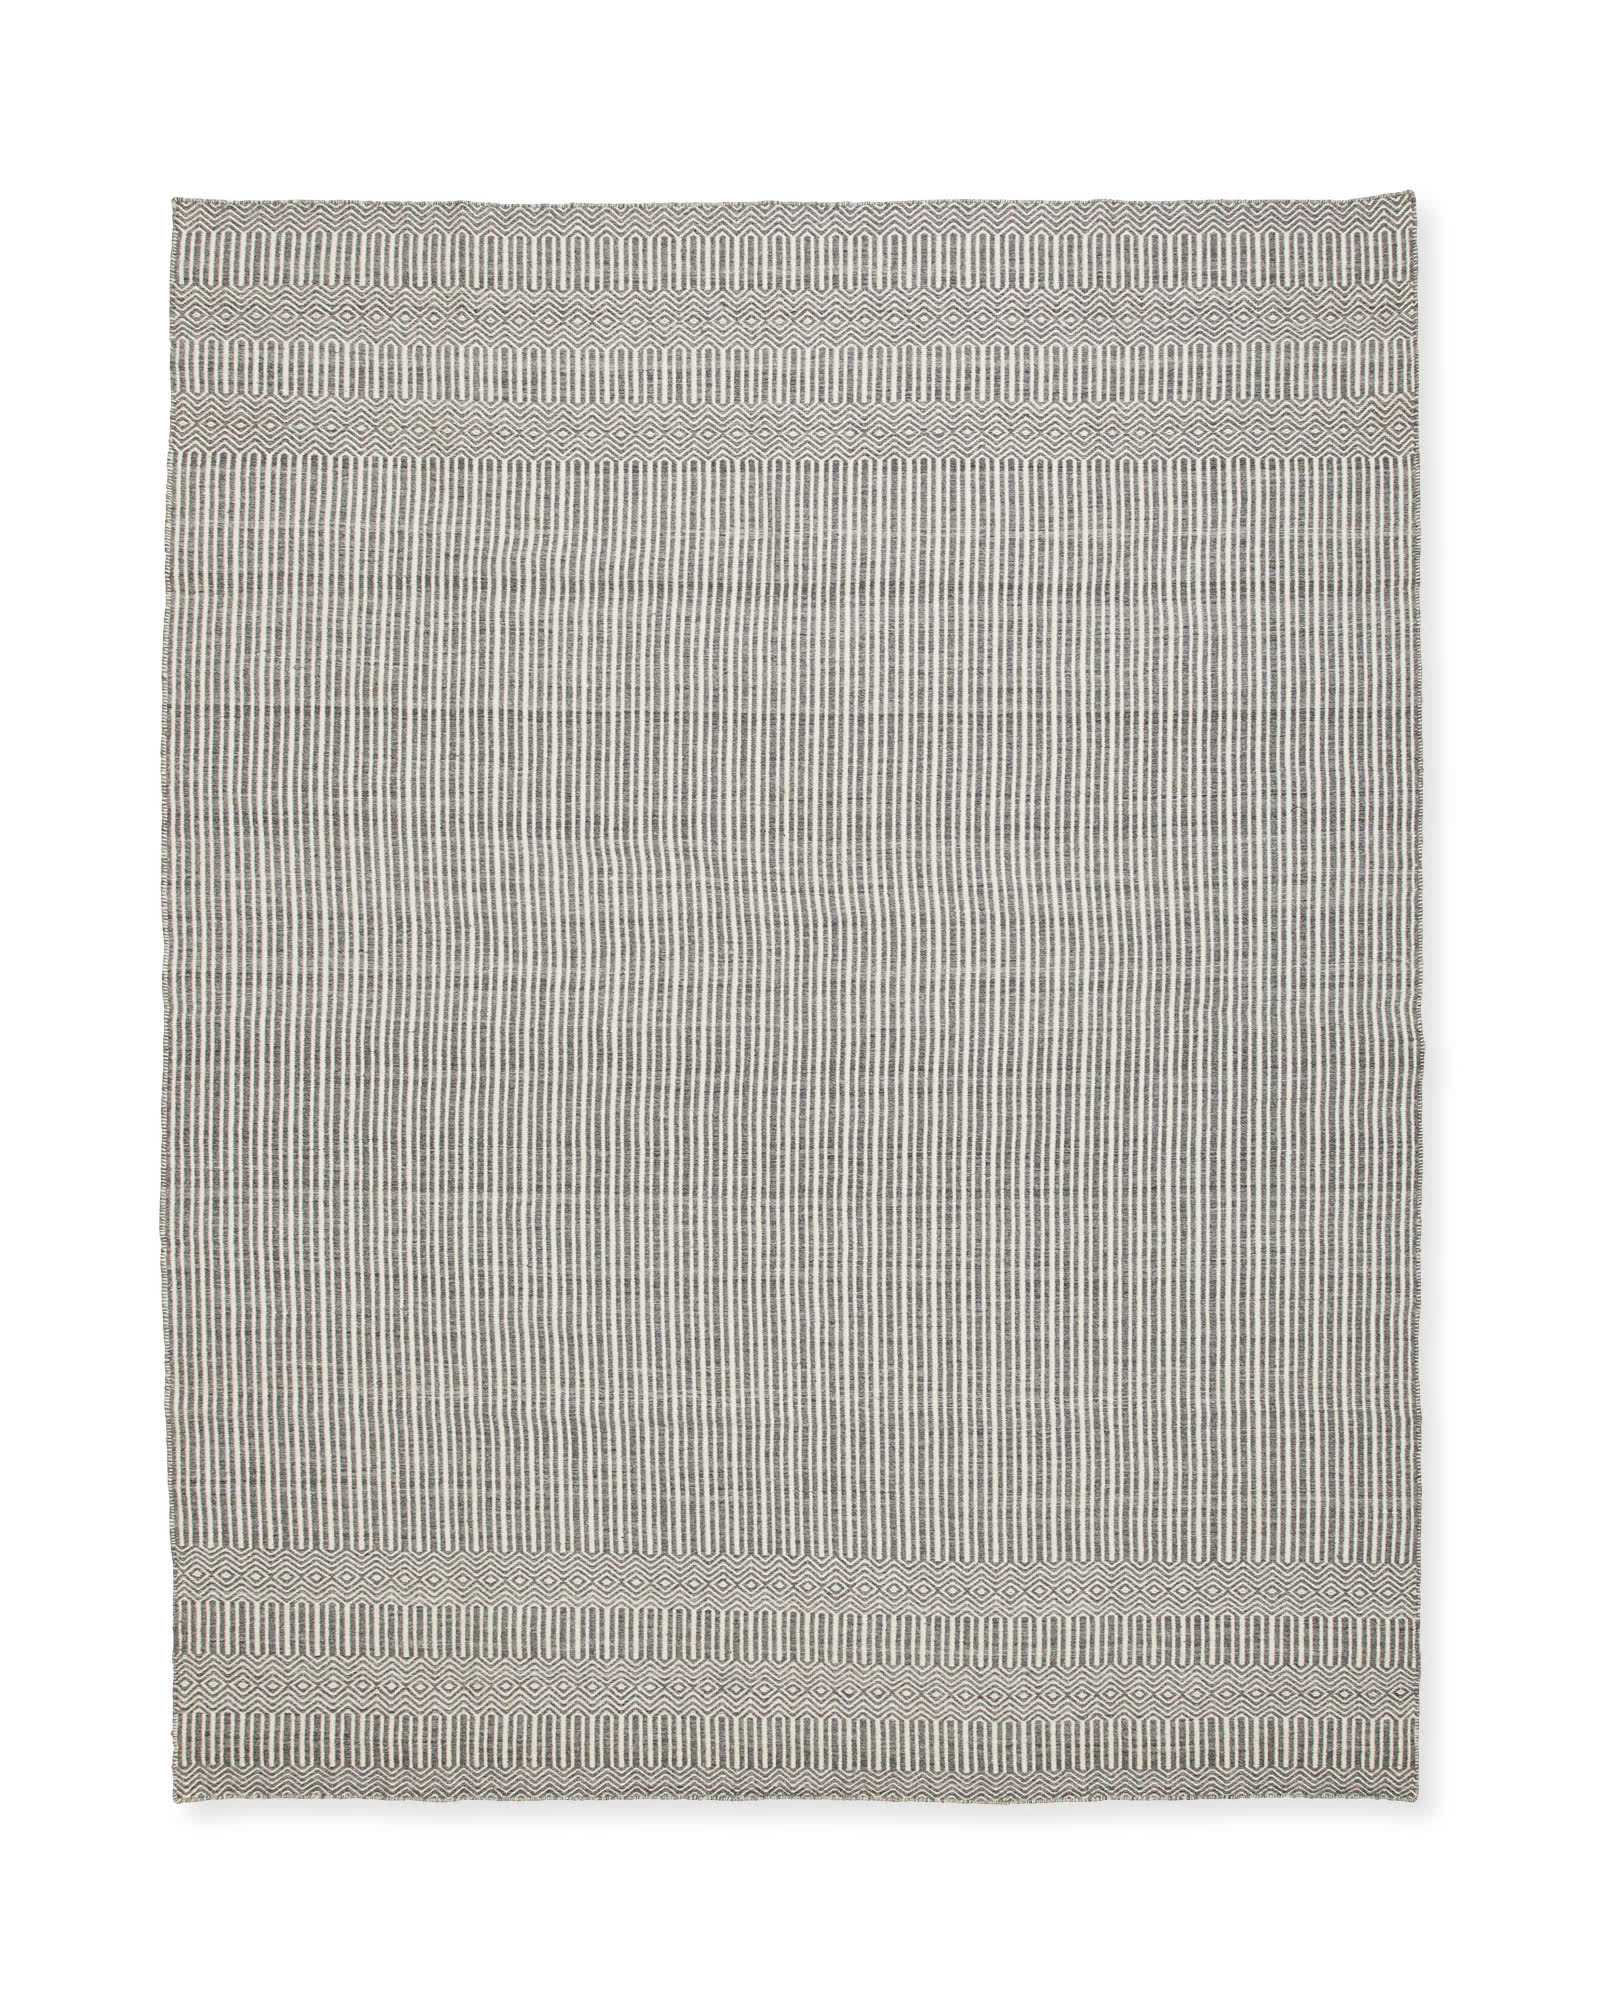 Turnstone Rug, Heathered Grey